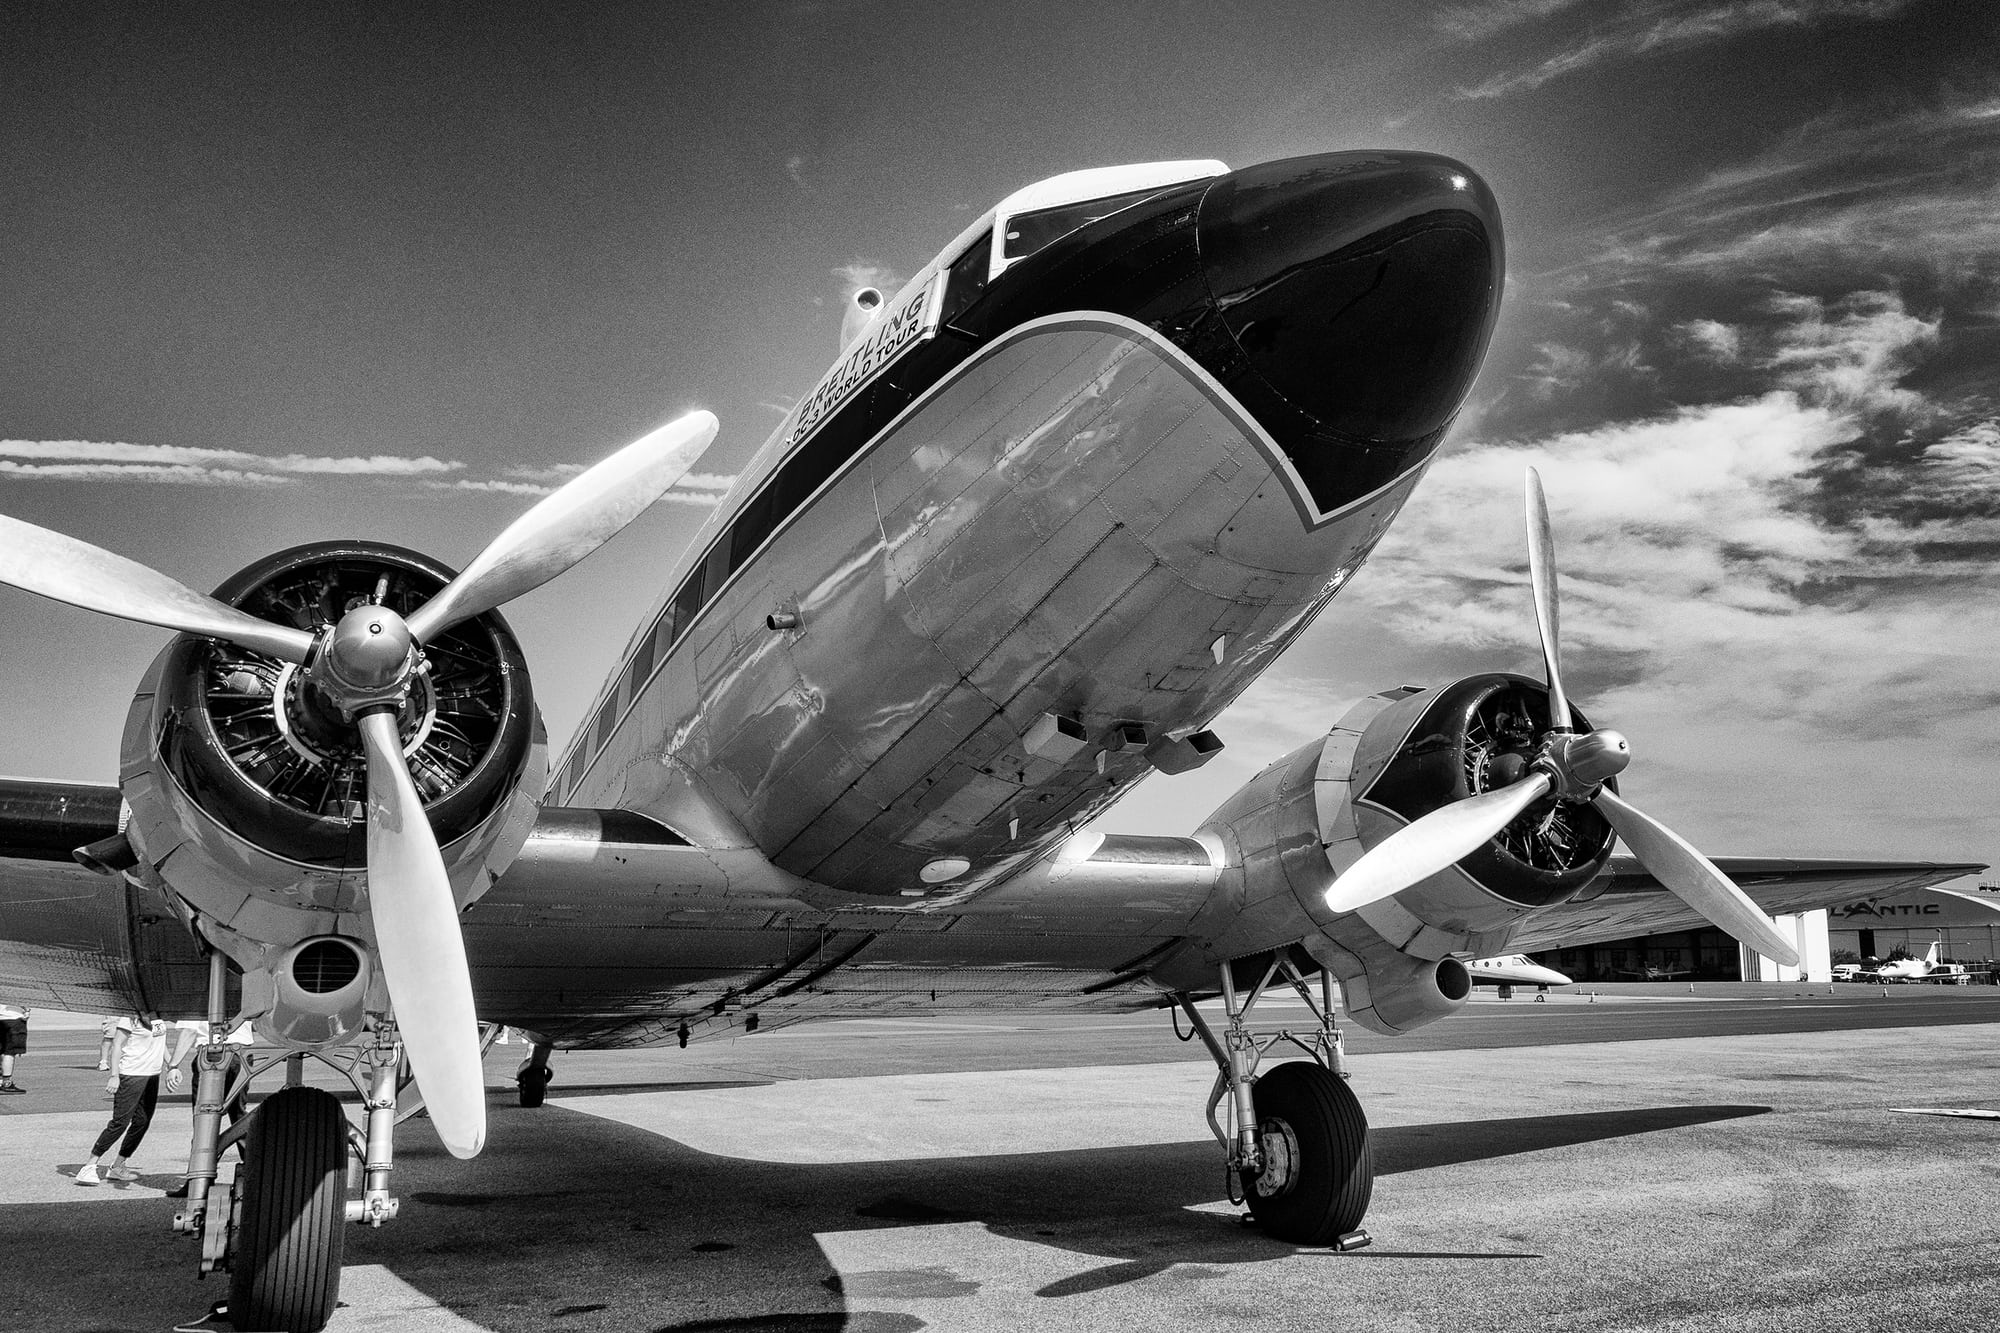 Breitling DC-3 nose and engines Dispatches: Breitling's DC-3 To Become Oldest Aircraft Ever To Circle The Earth Dispatches: Breitling's DC-3 To Become Oldest Aircraft Ever To Circle The Earth P8212268 bw